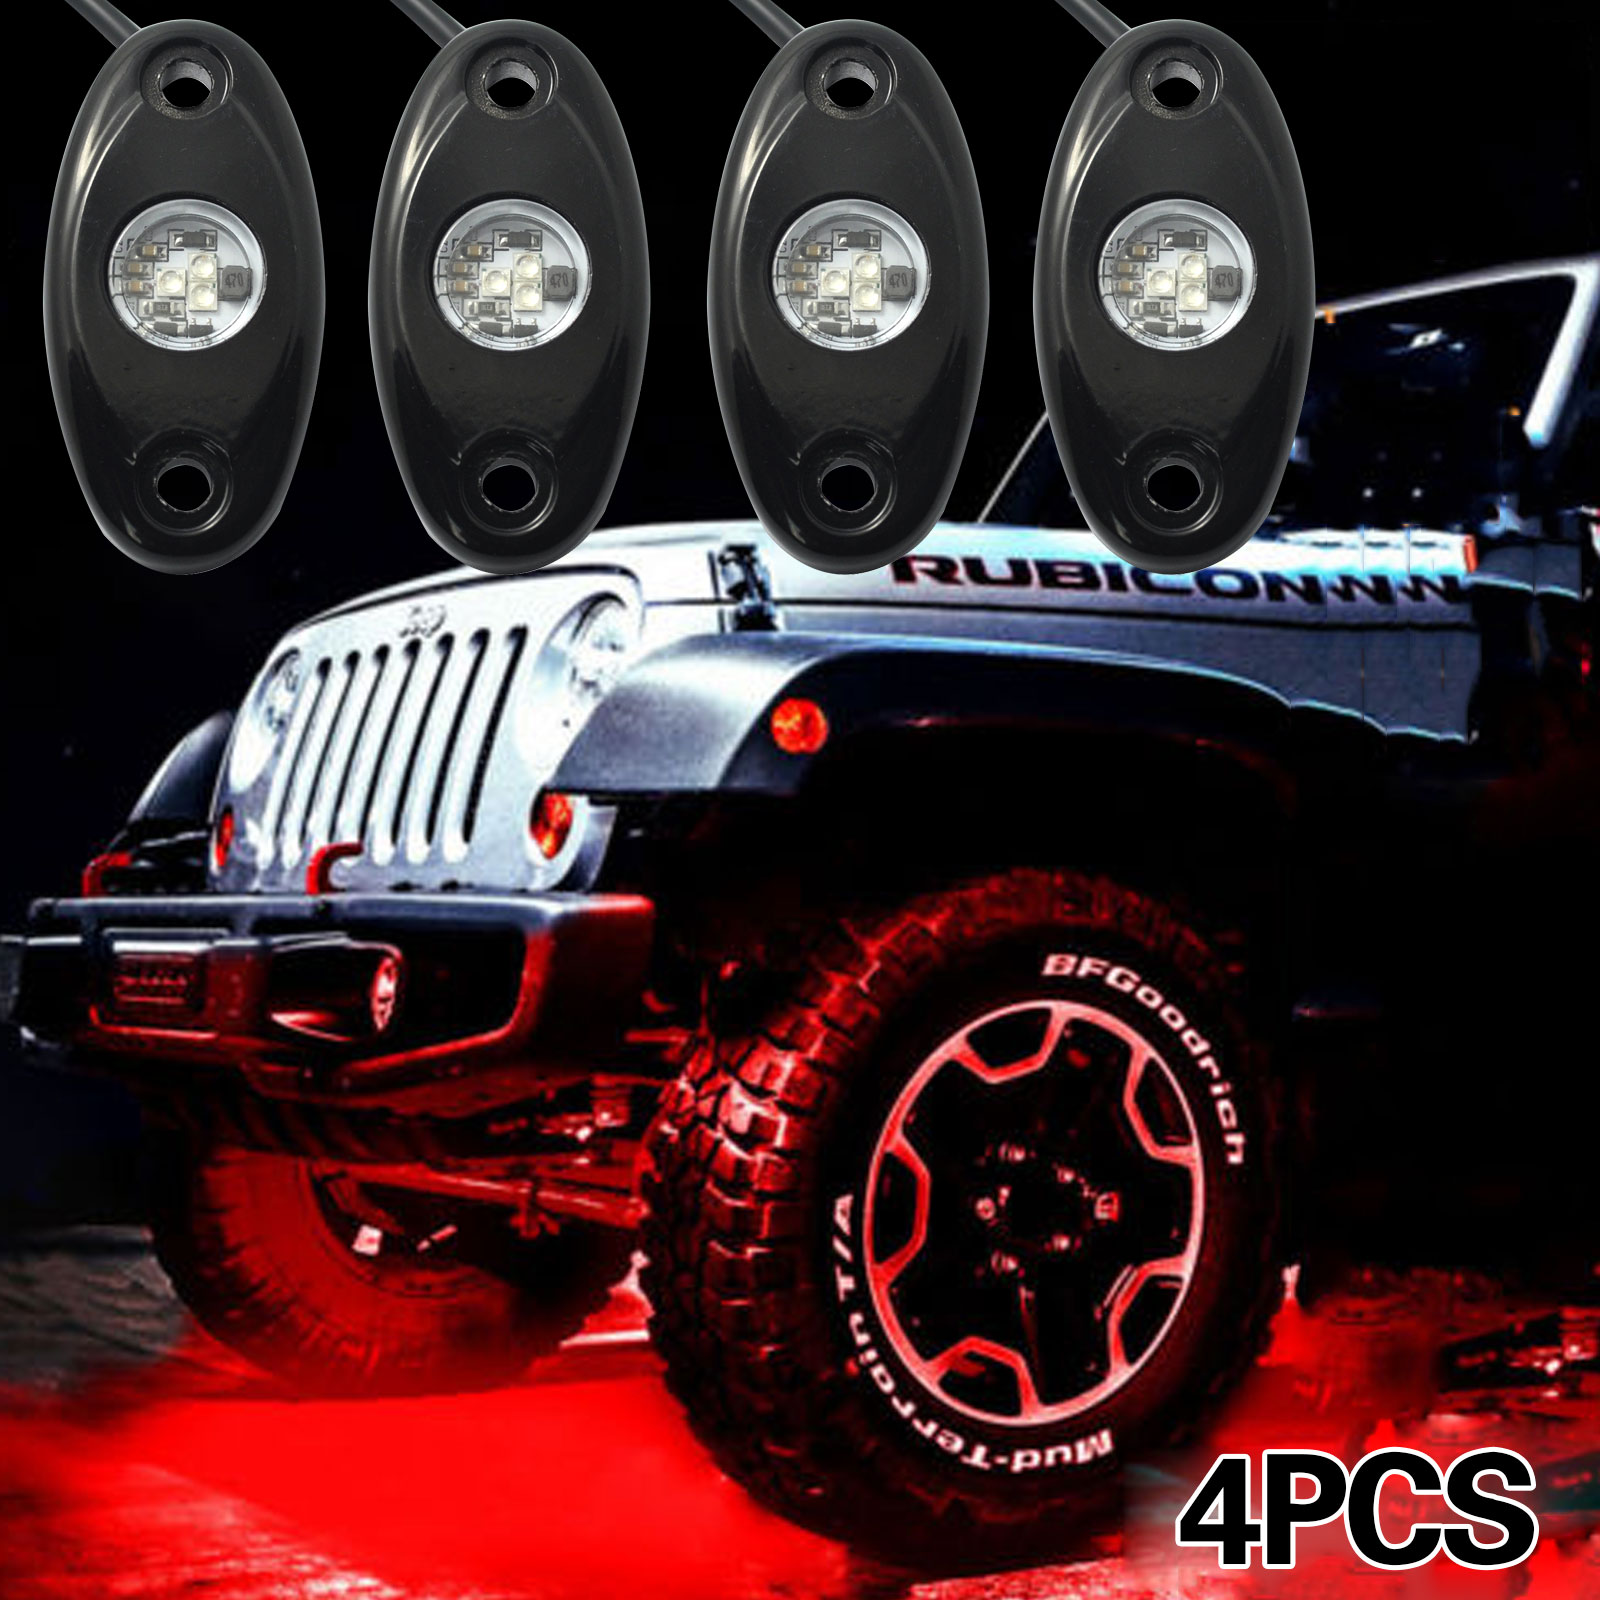 4pcs Car OFF Road Ultra Bright Red Car LED Under Body Glow Rock Light for JEEP ATV SUV Truck<br>